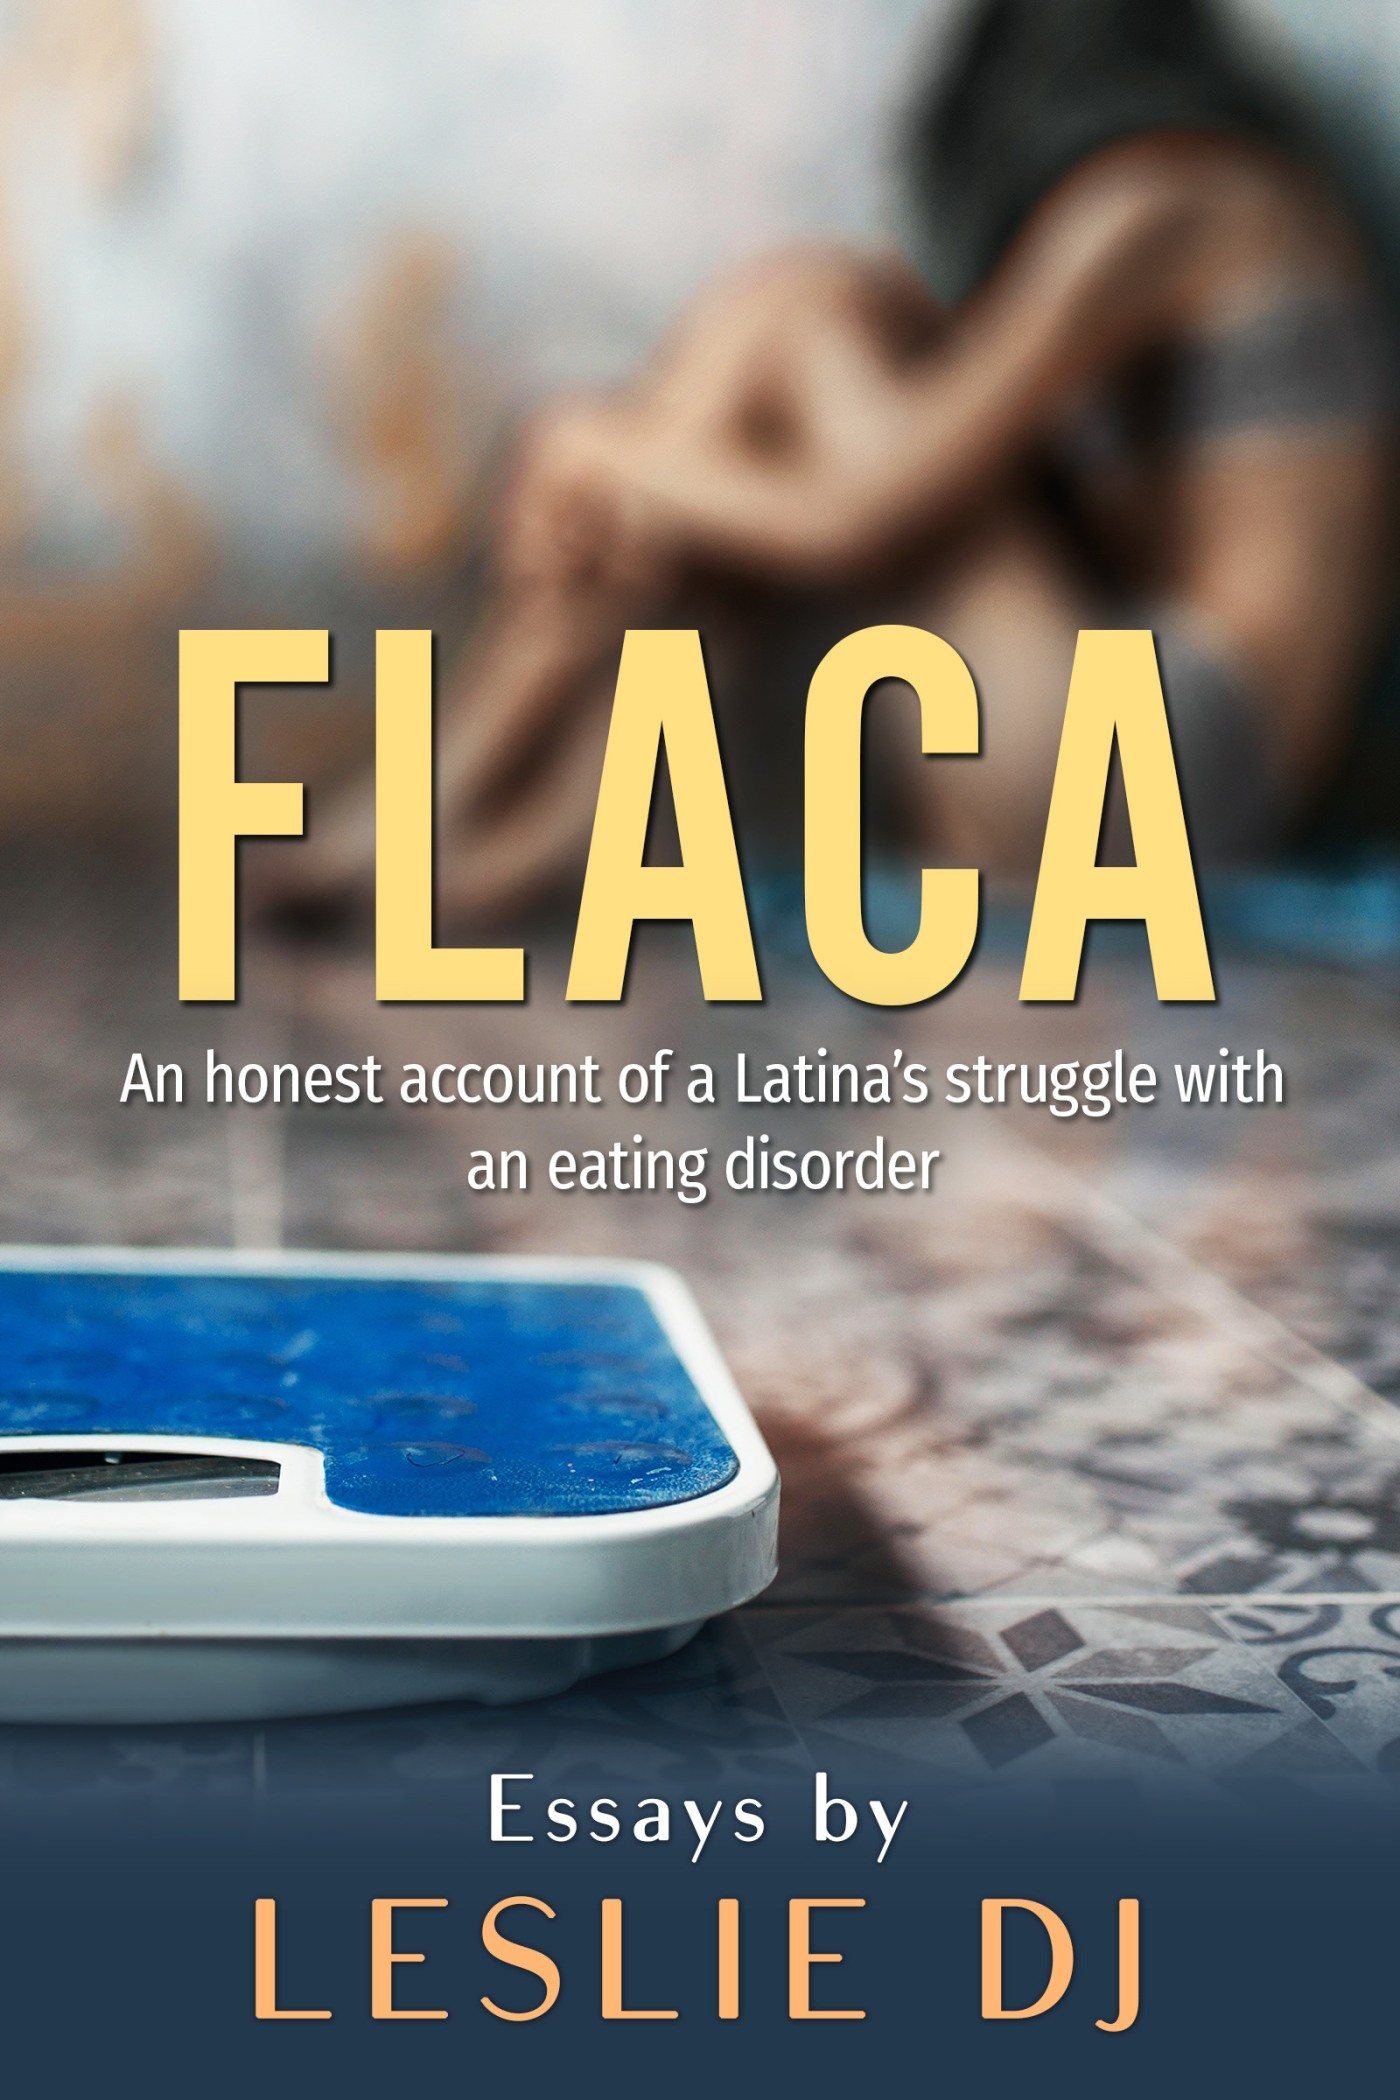 The cover of Flaca, by Leslie DJ